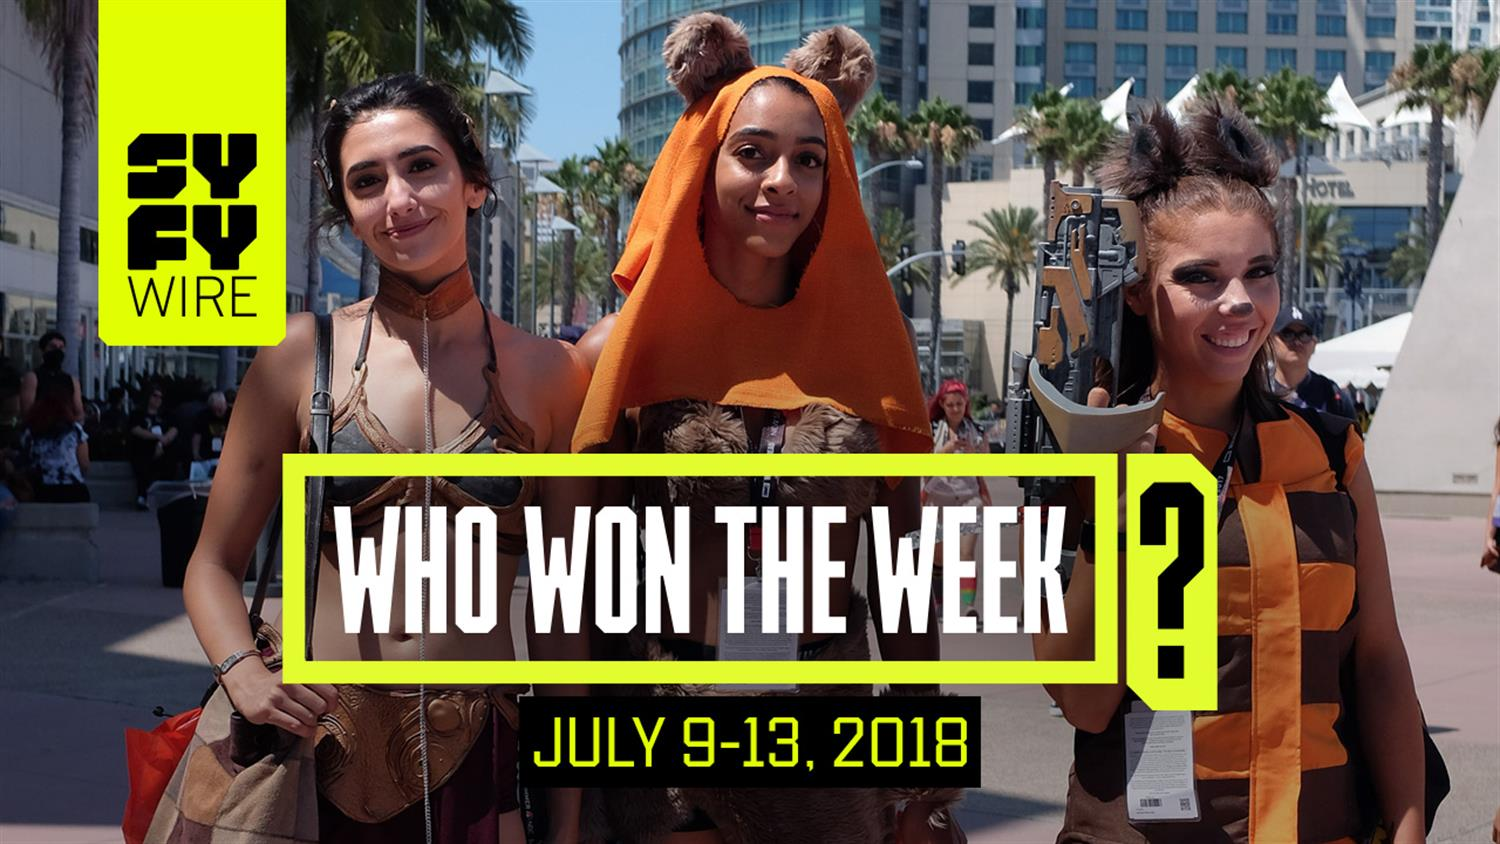 Here's What We're Doing For San Diego Comic-Con: Who Won The Week For July 9-13